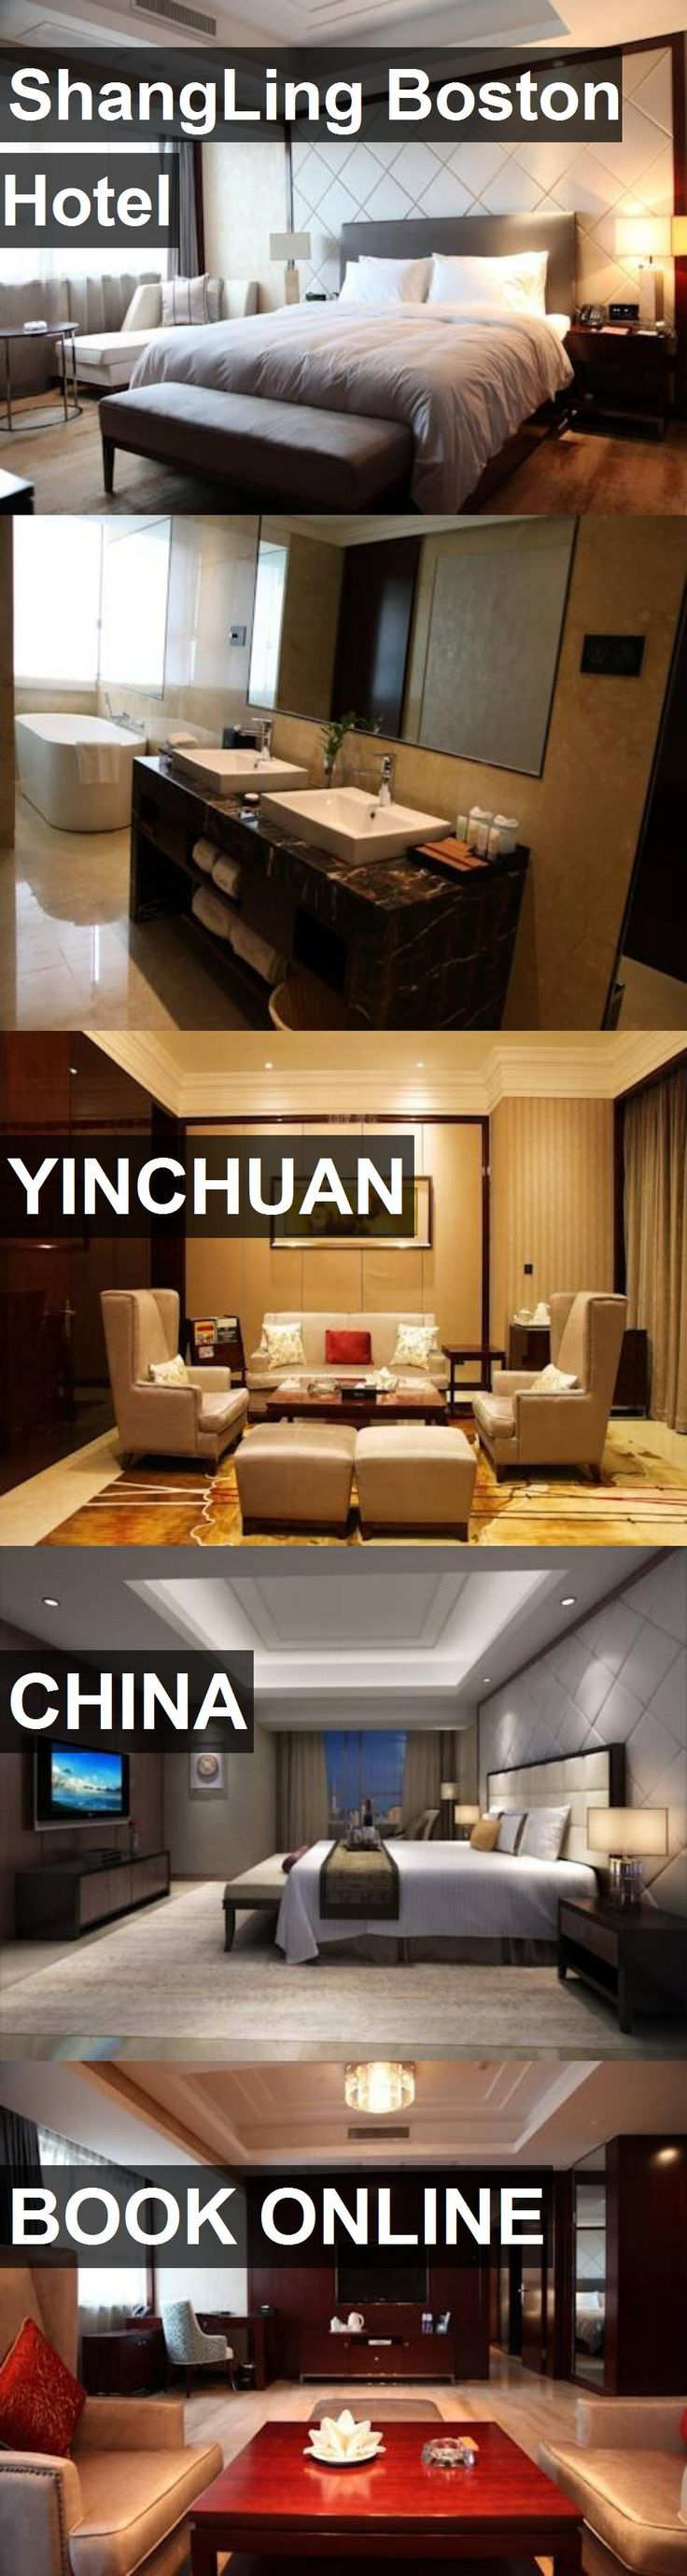 ShangLing Boston Hotel in Yinchuan, China. For more information, photos, reviews and best prices please follow the link. #China #Yinchuan #travel #vacation #hotel